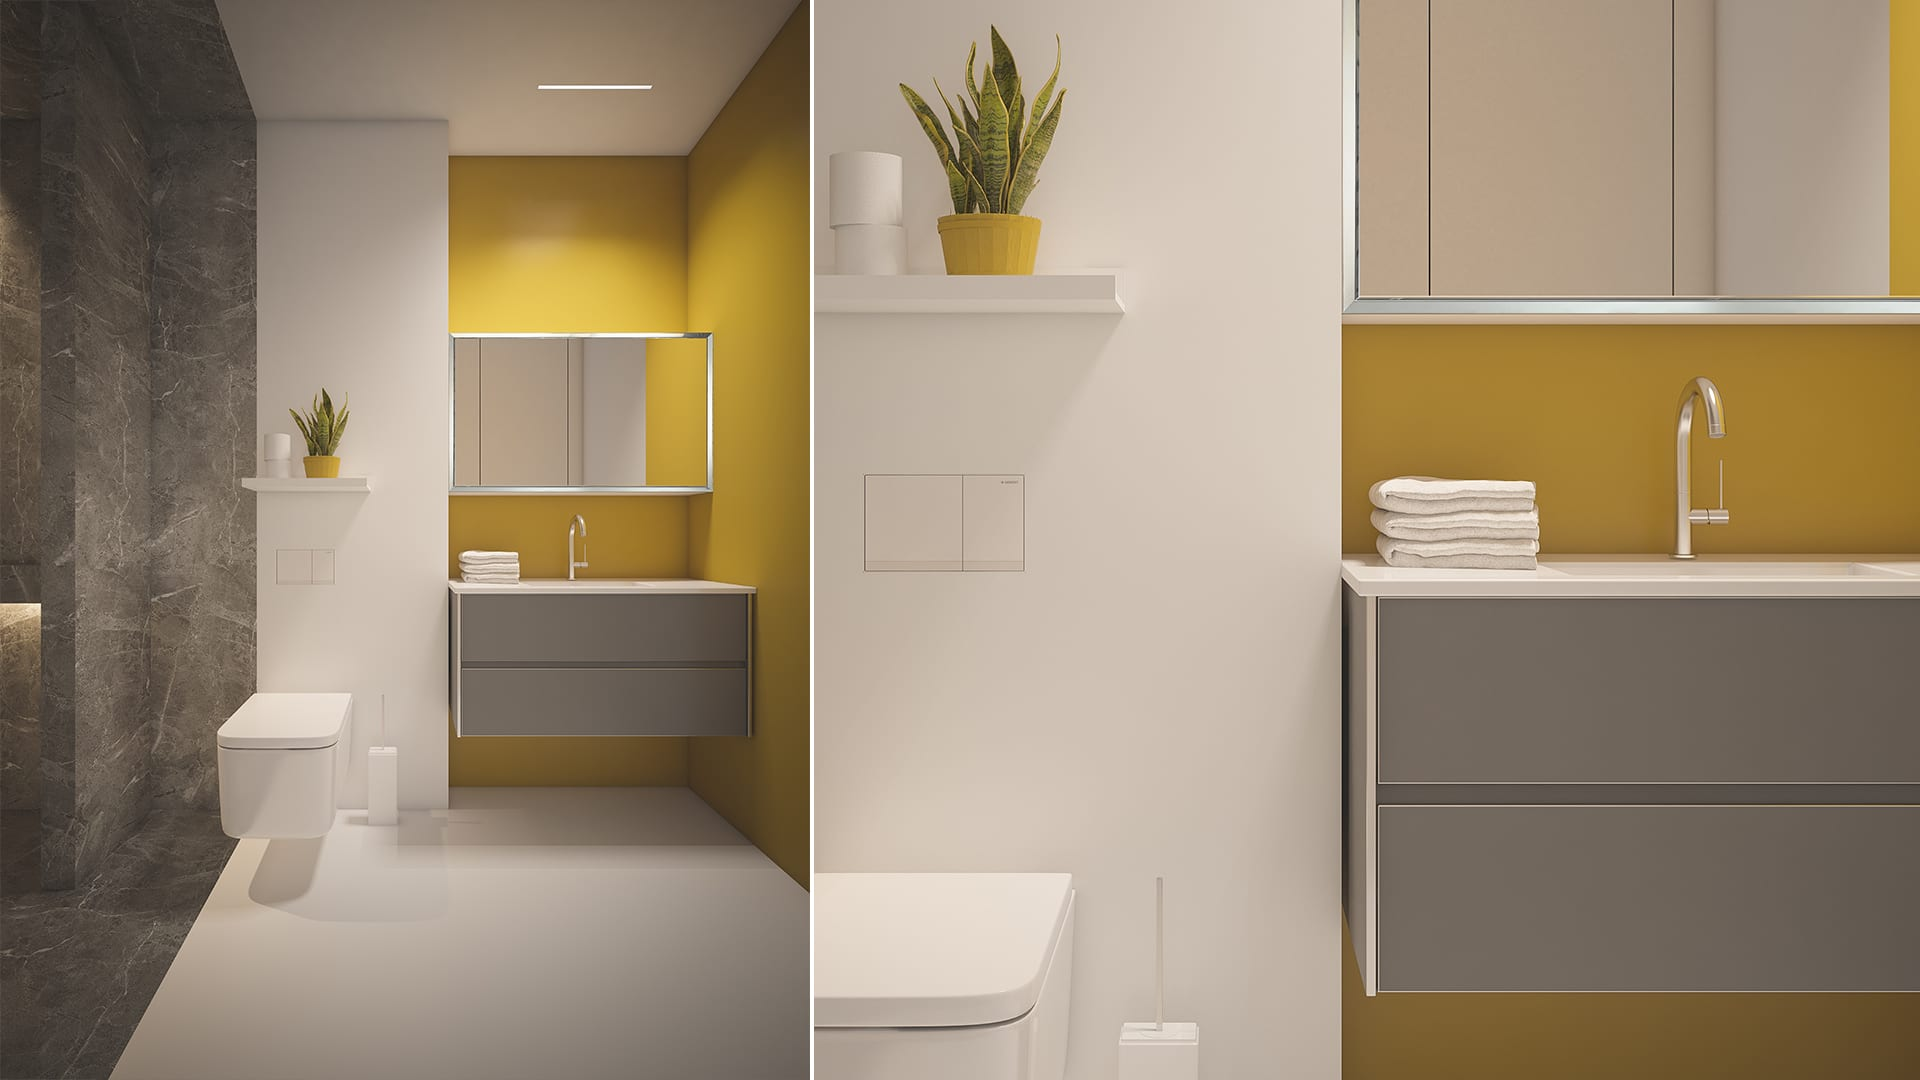 Maayan-Golan_Architectural-Visualization_product-visualization_ Bathroom-cabinets_ company-Ambin-Systems_03